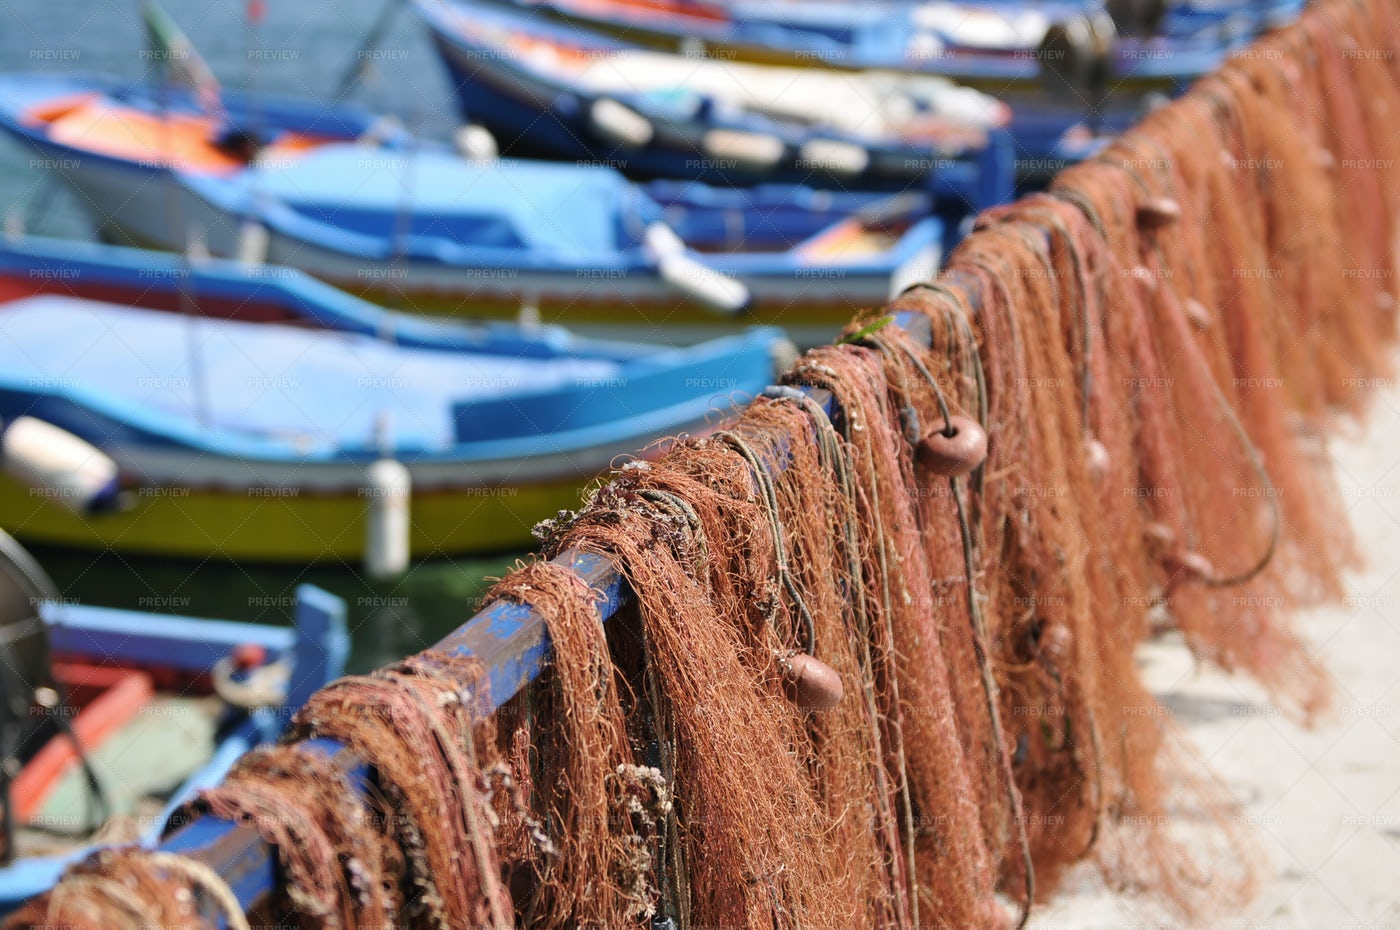 Fishing Nets And Fish Traps: Stock Photos